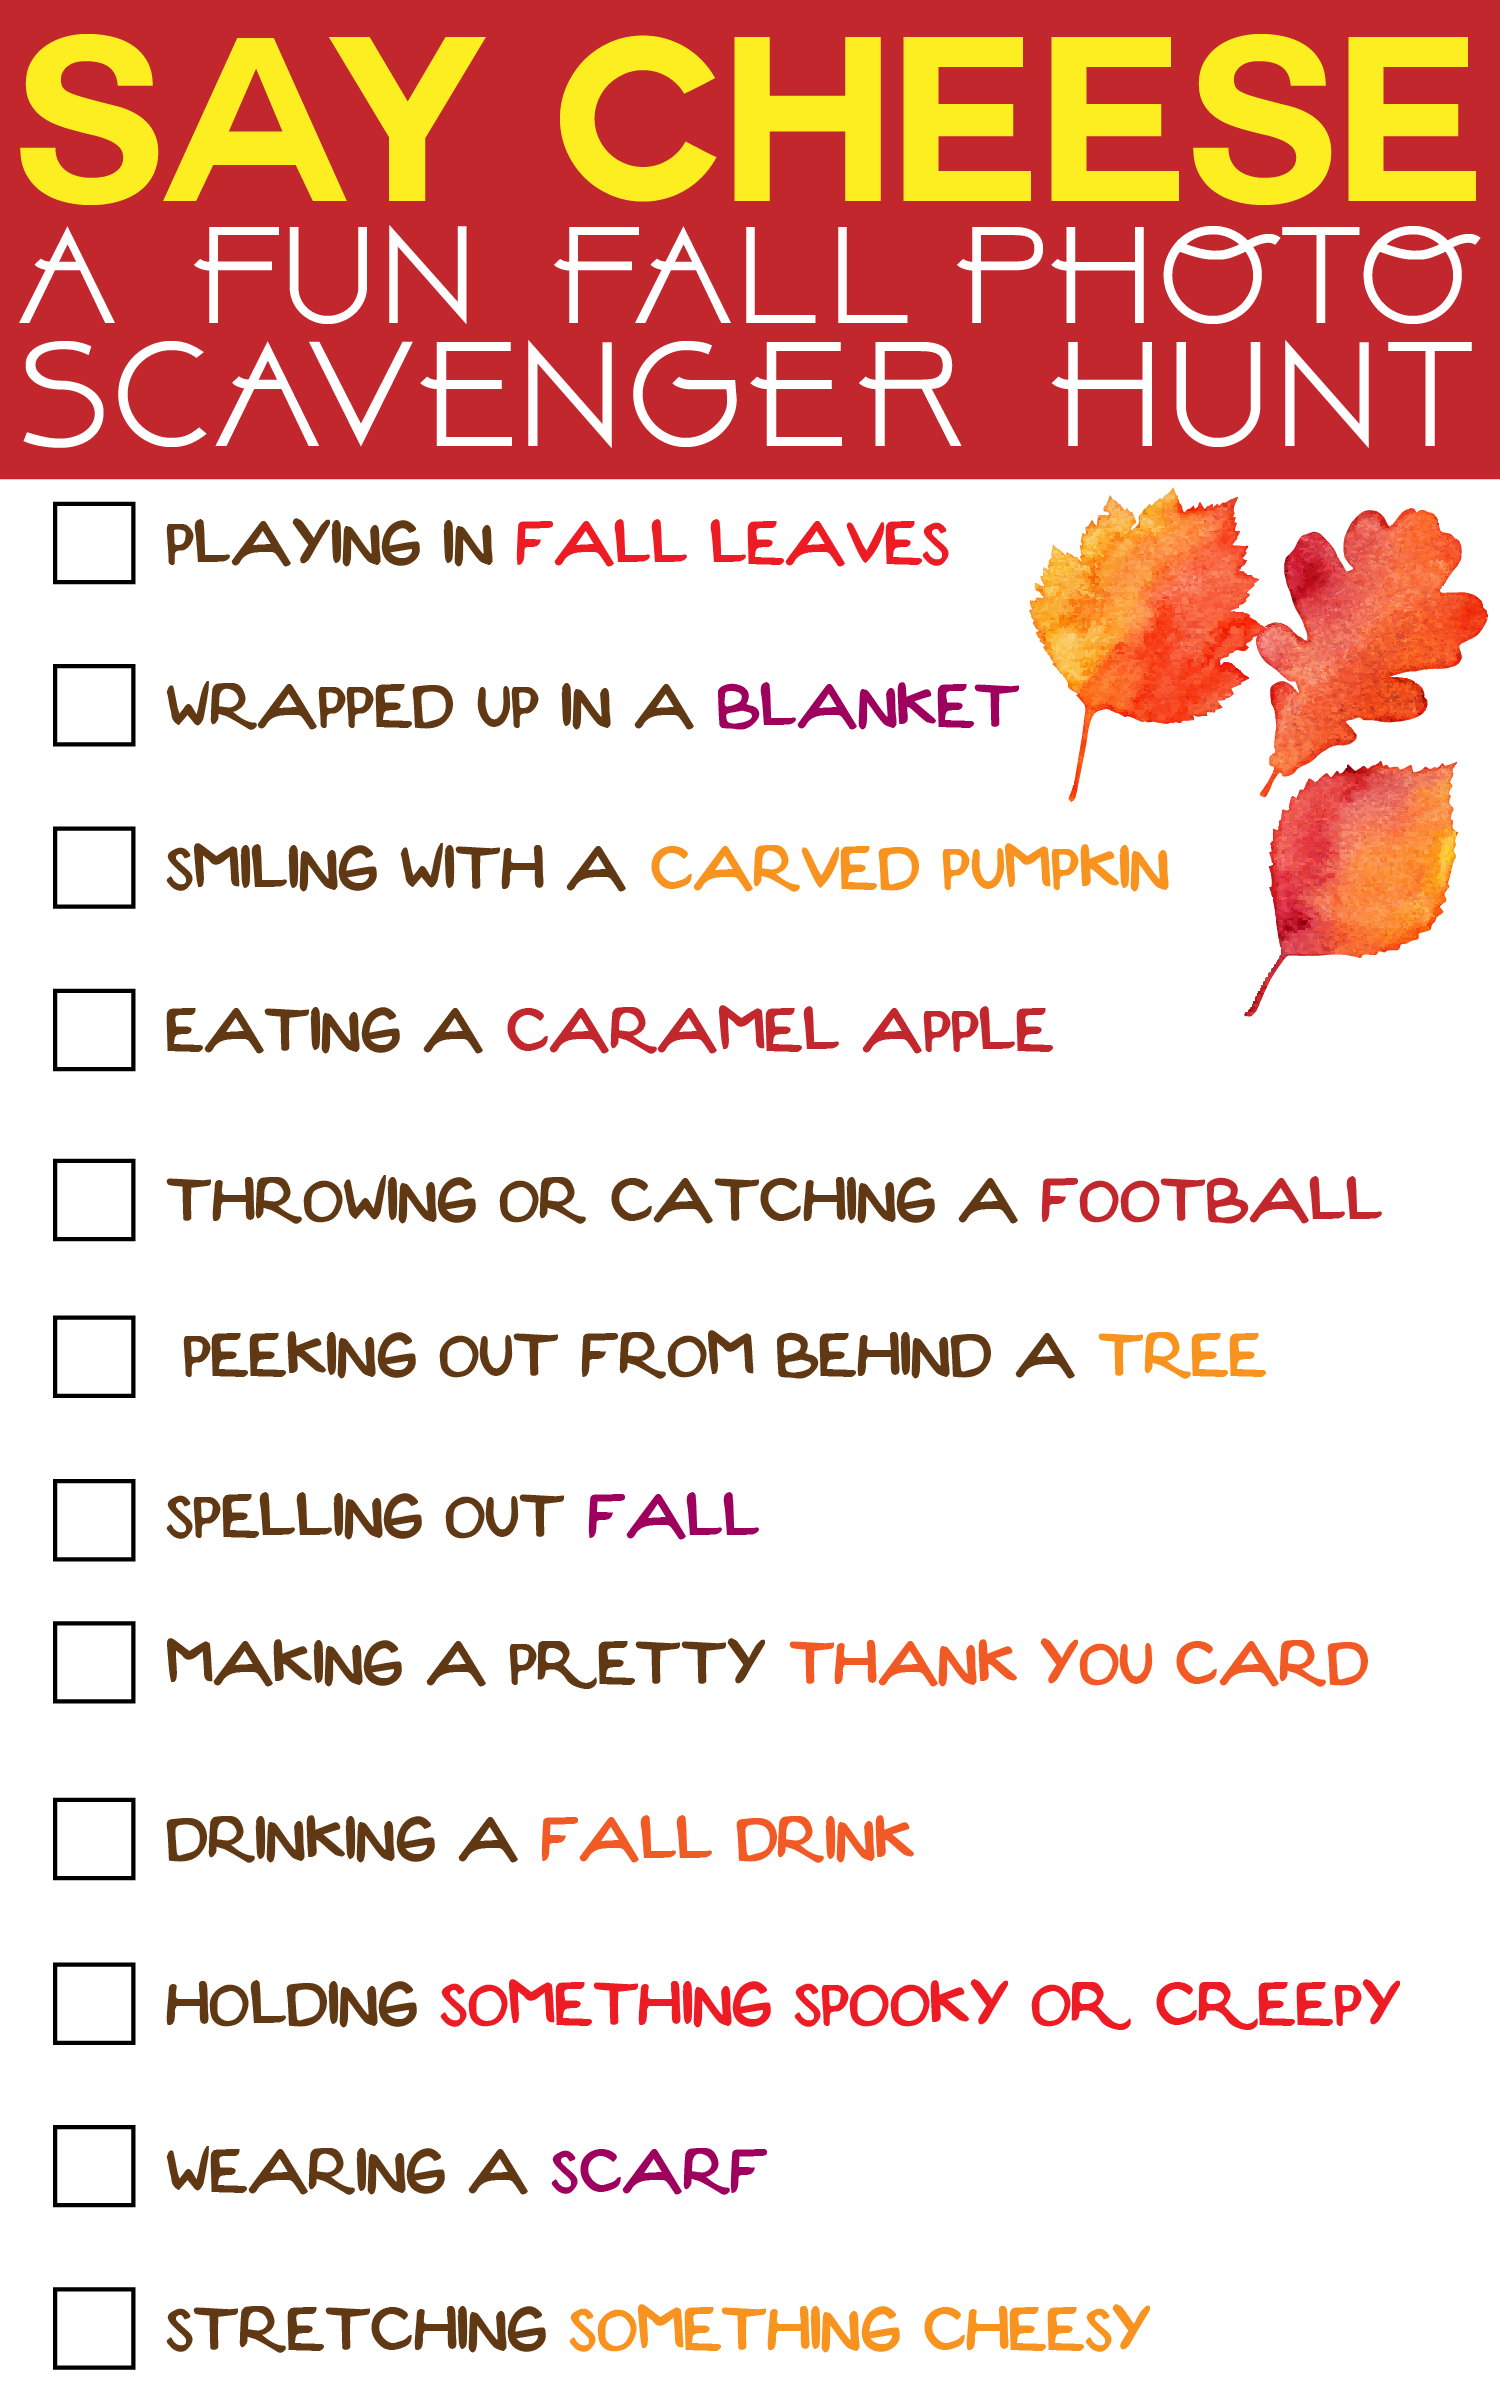 A Fun Fall Photo Scavenger Hunt That Works Great For